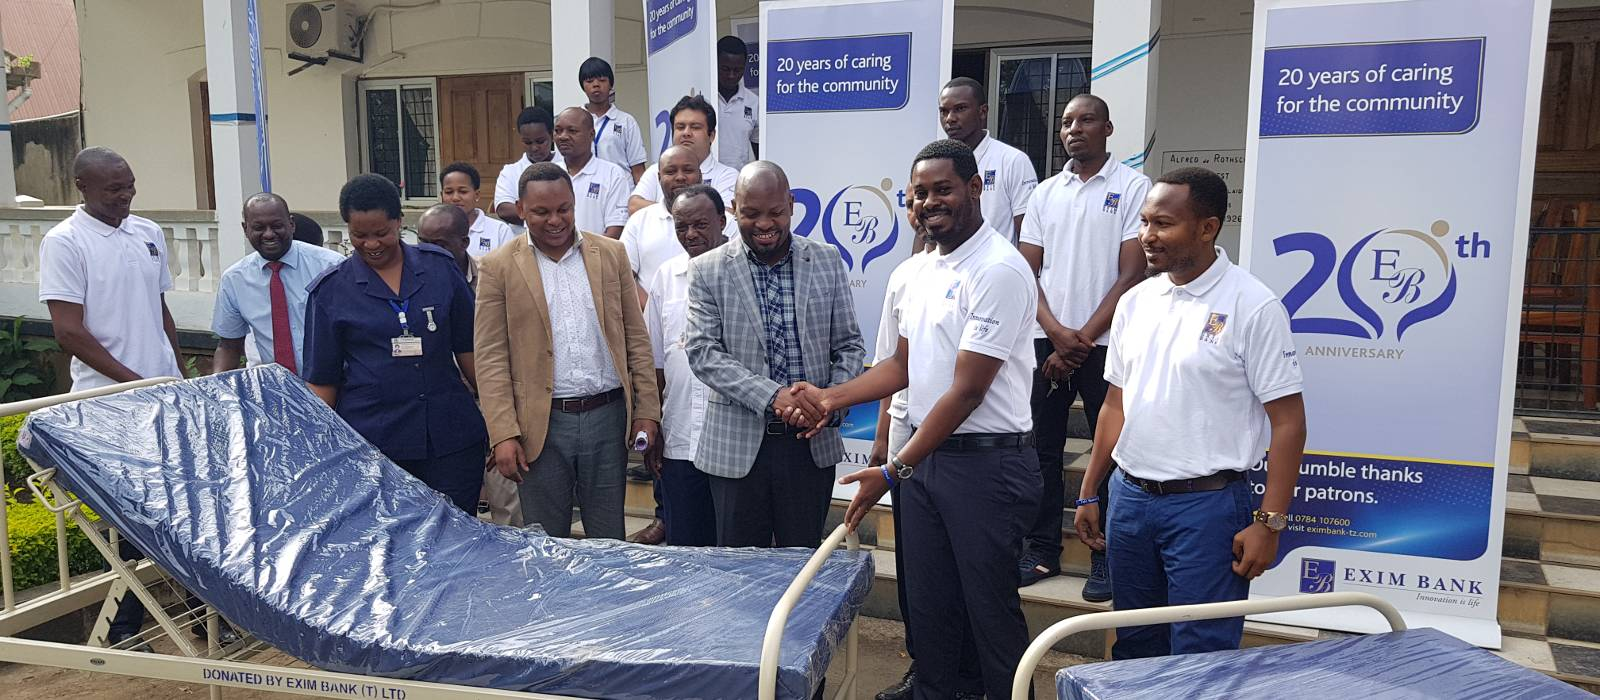 Exim Tanzania donating beds and mattresses to Mount Meru Regional Hospital in Arusha